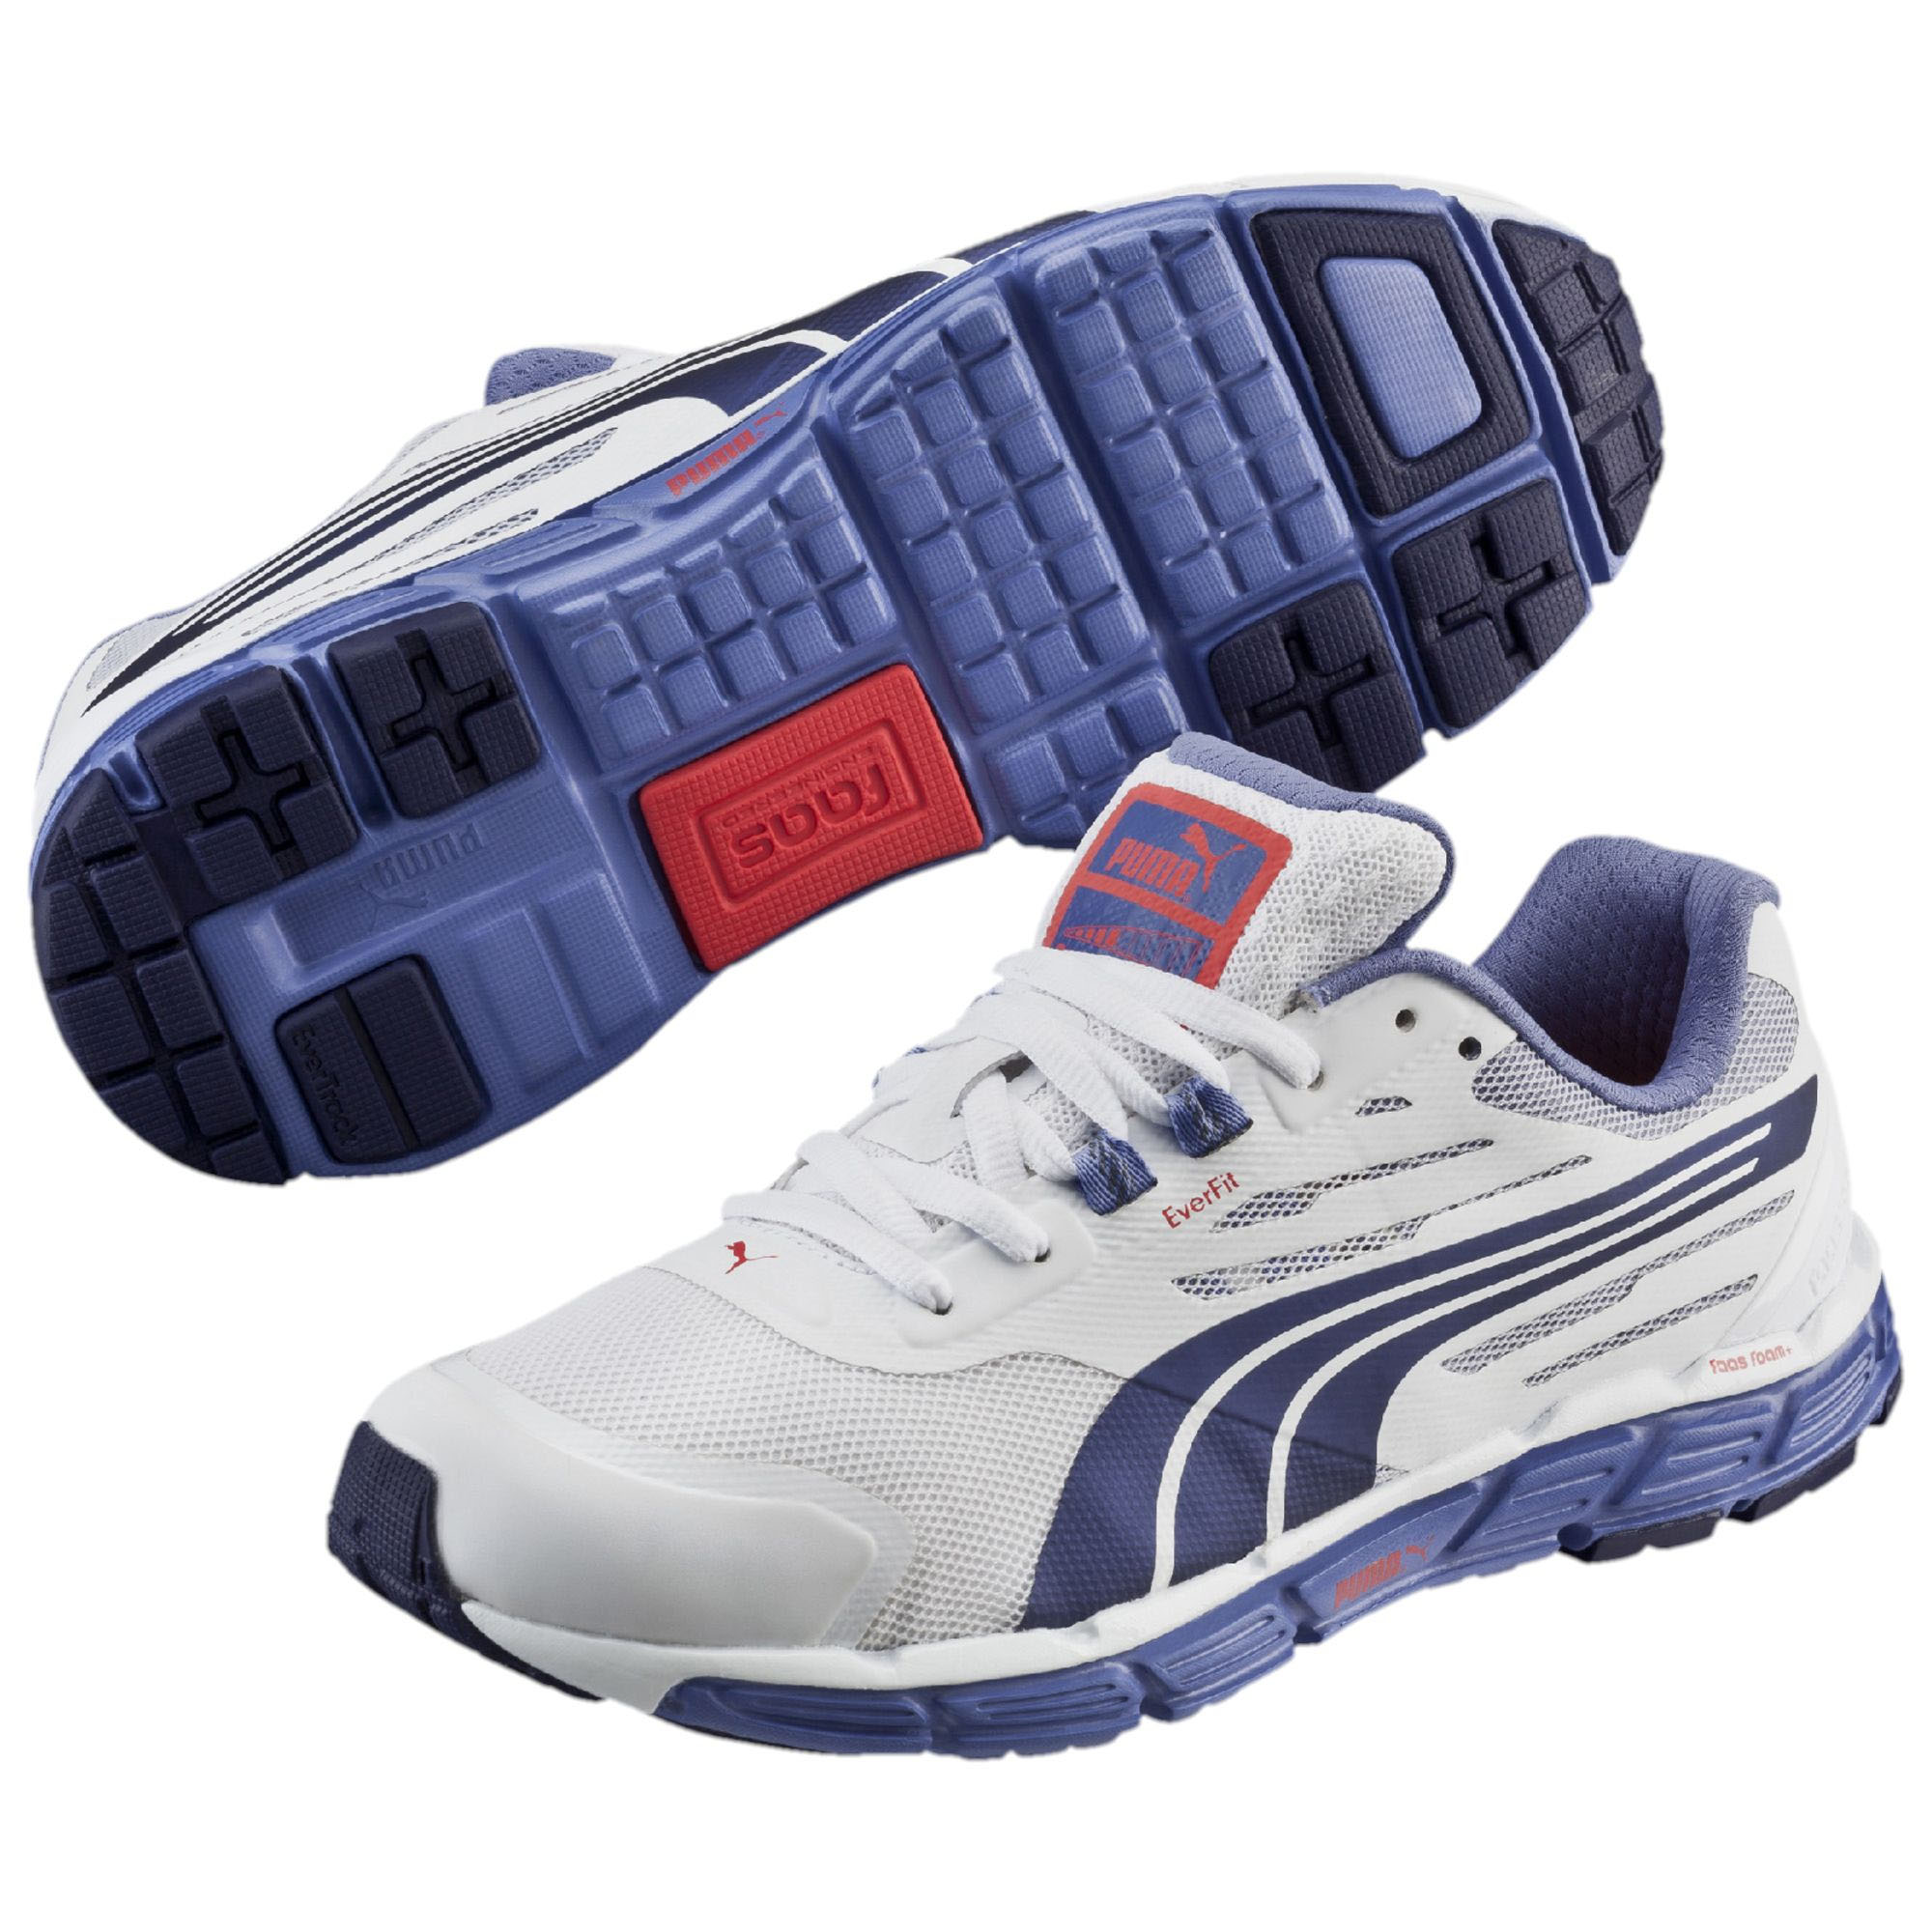 Puma Faas 500 S V2 Ladies Running Shoes  6.5 UK